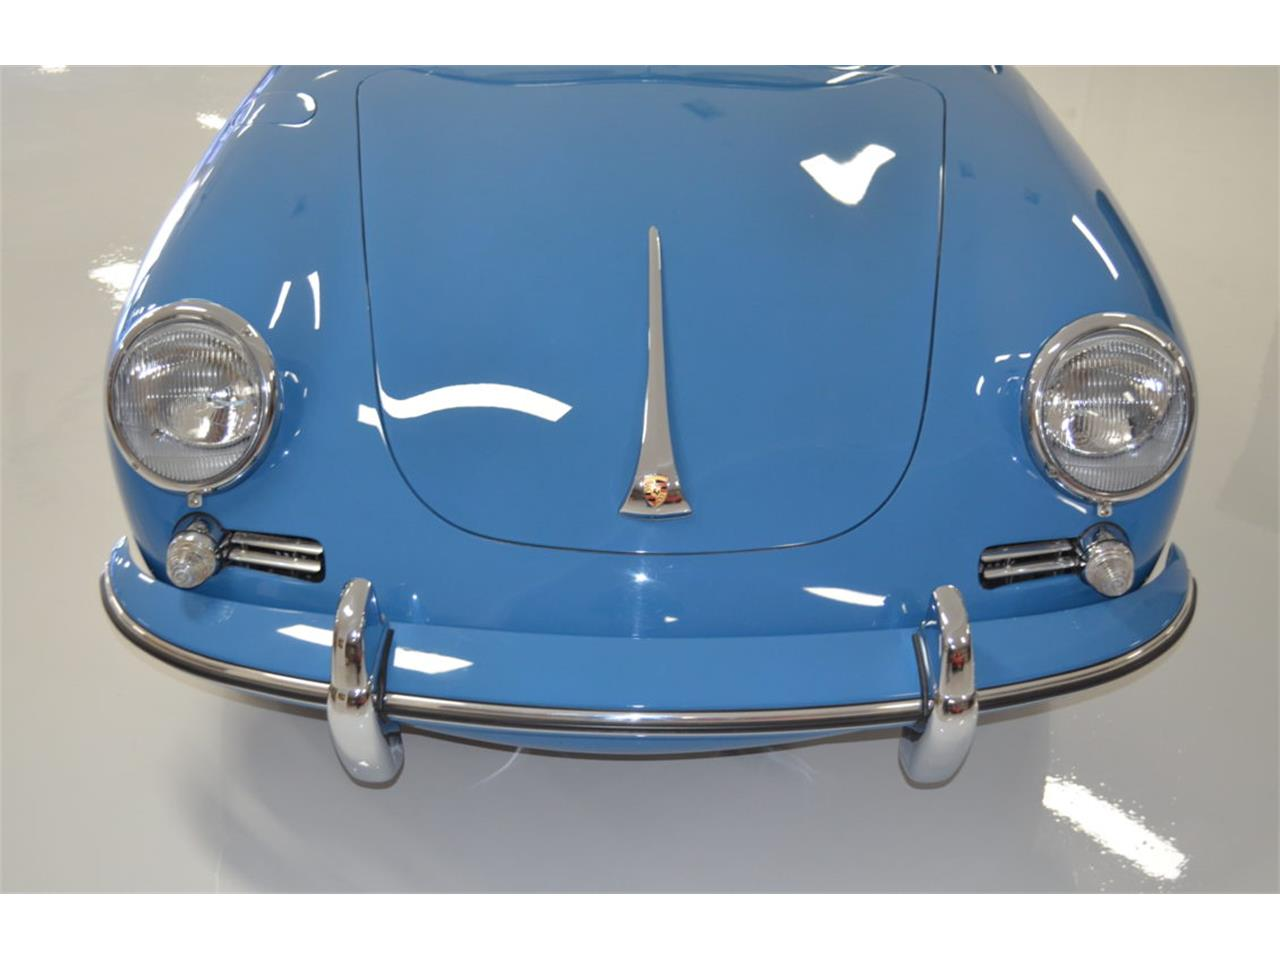 Large Picture of 1964 Porsche 356 located in Phoenix Arizona - $189,800.00 - PZL1